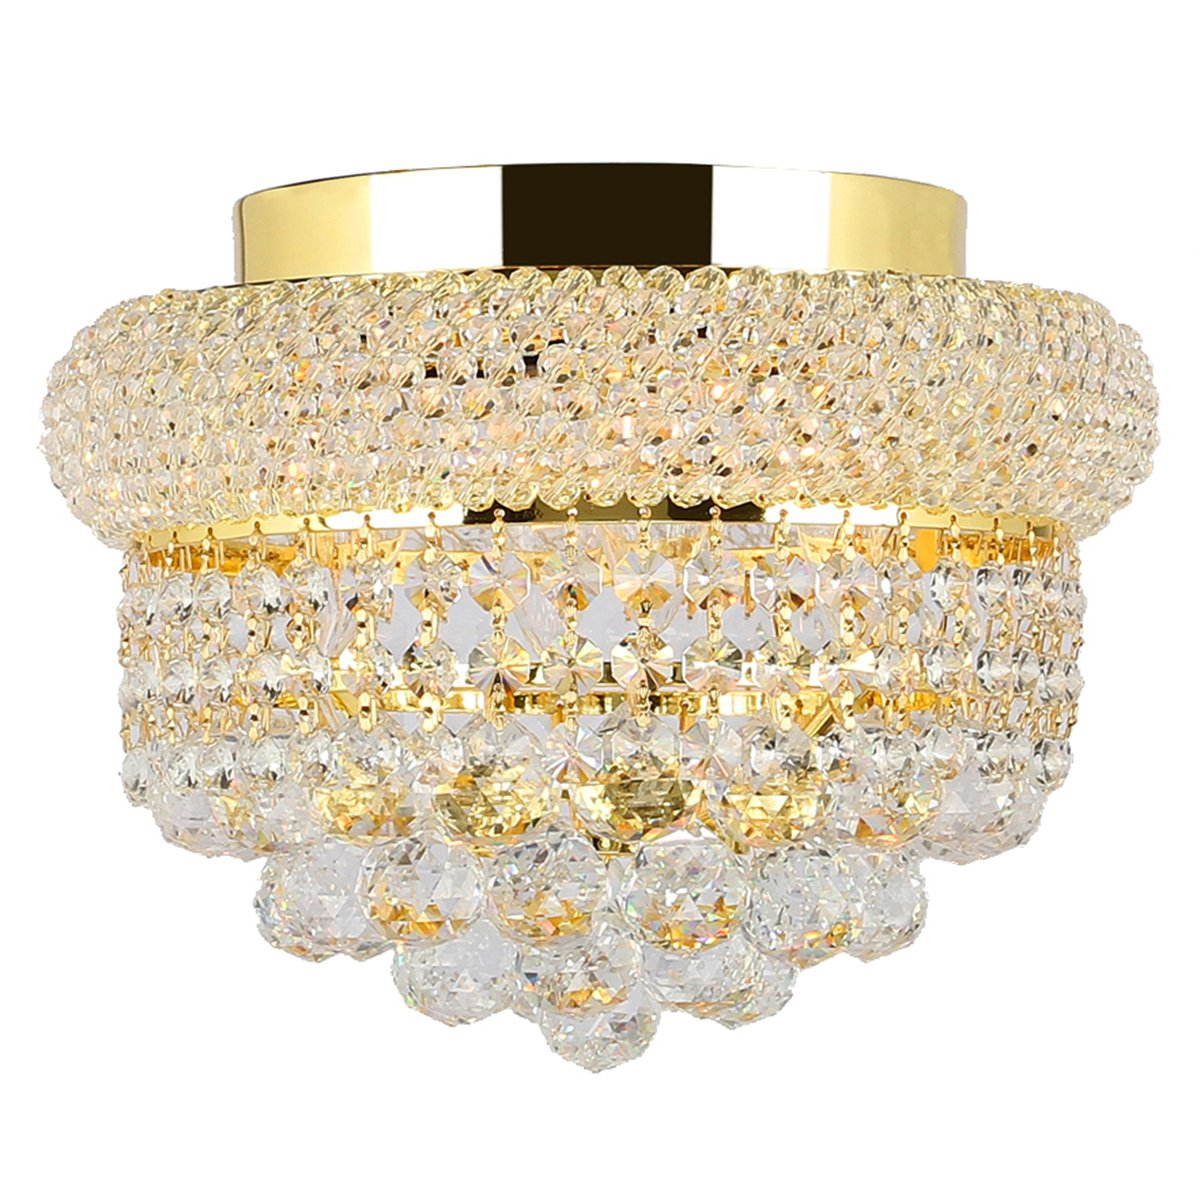 Worldwide Lighting Empire Collection 4 Light Gold Finish and Clear Crystal Flush Mount Ceiling Light 12 D x 6 H Round Small